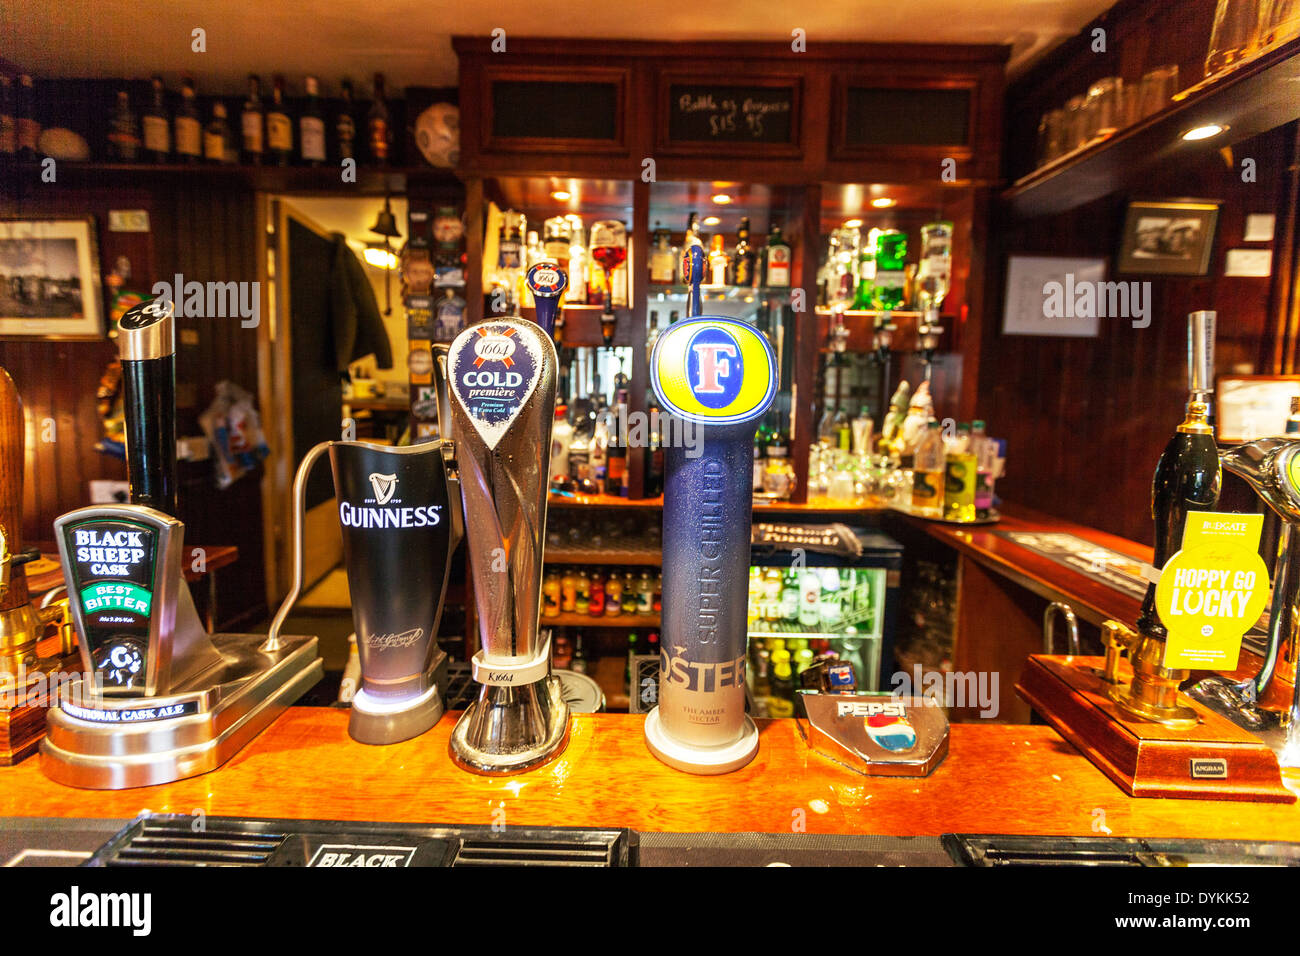 pub bar Beer pumps ale lager fosters Guinness black sheep Yorkshire Dales National Park, UK England GB - Stock Image